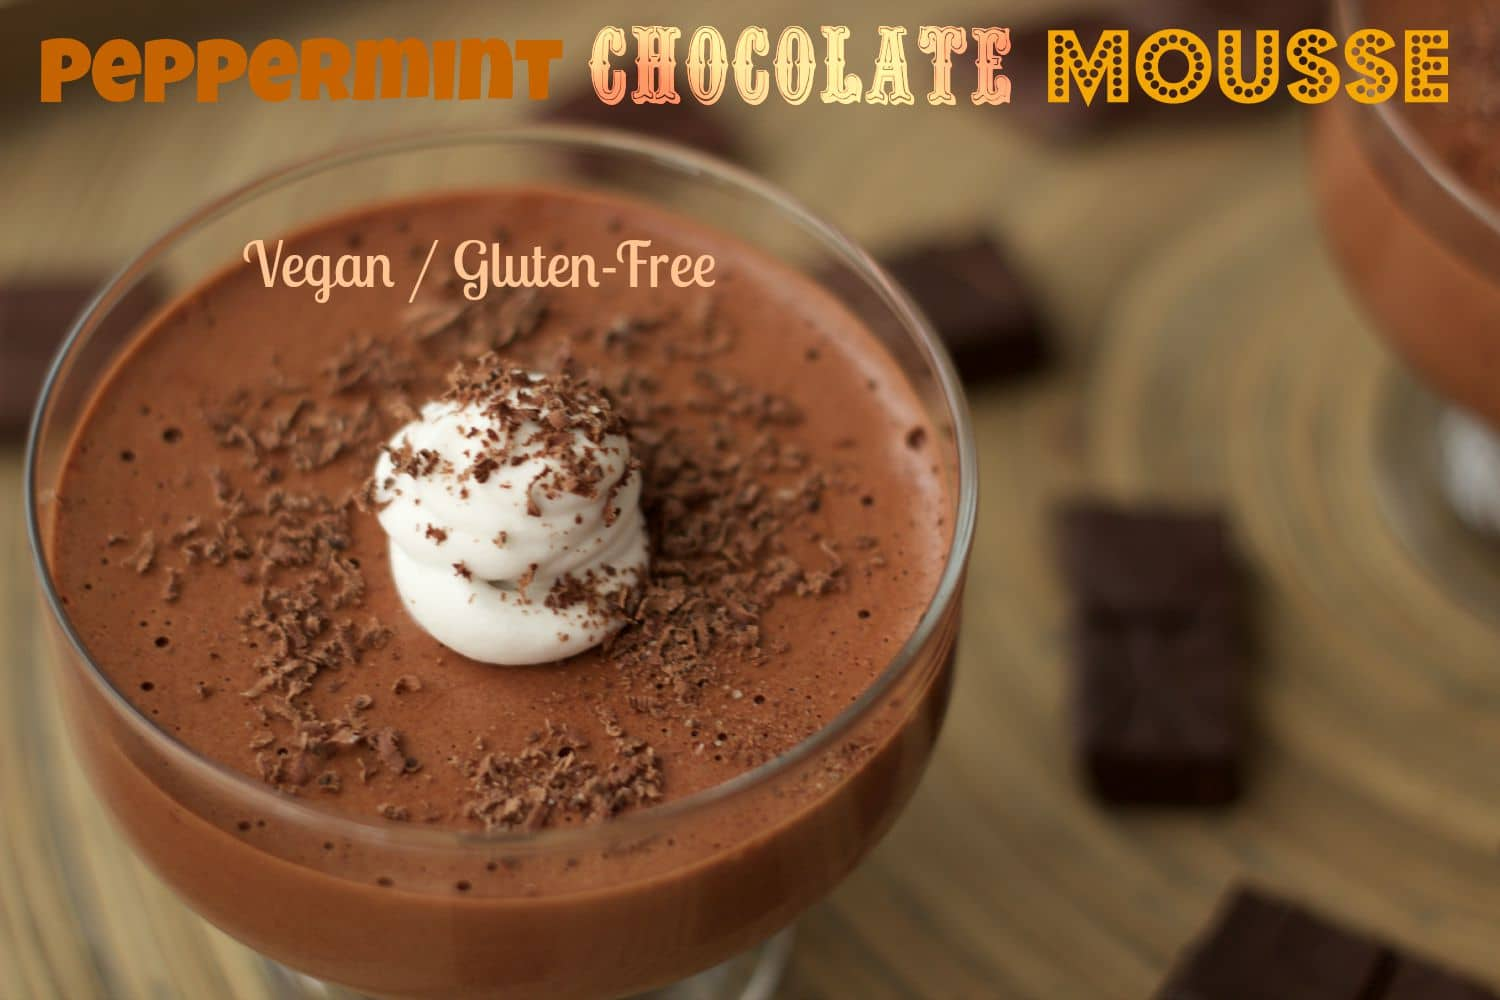 The best peppermint chocolate mousse EVER! #vegan #dairy-free #gluten-free #lovingitvegan